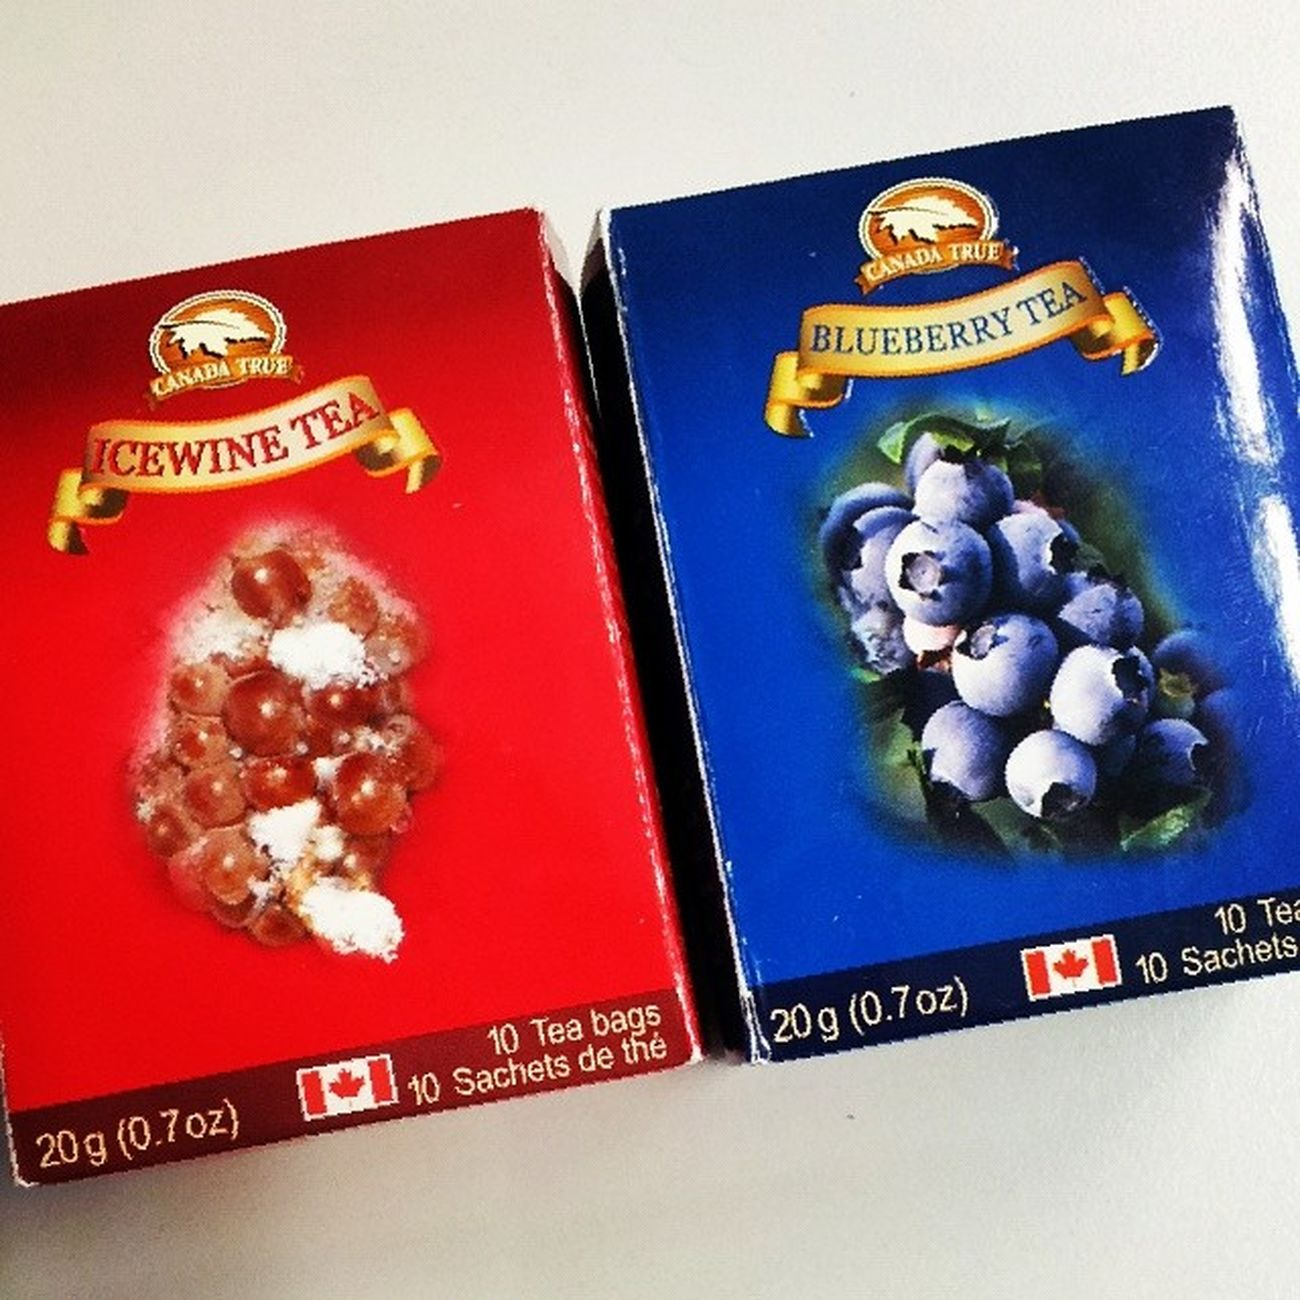 Canadiantea Icewine Blueberry Tea canada gift